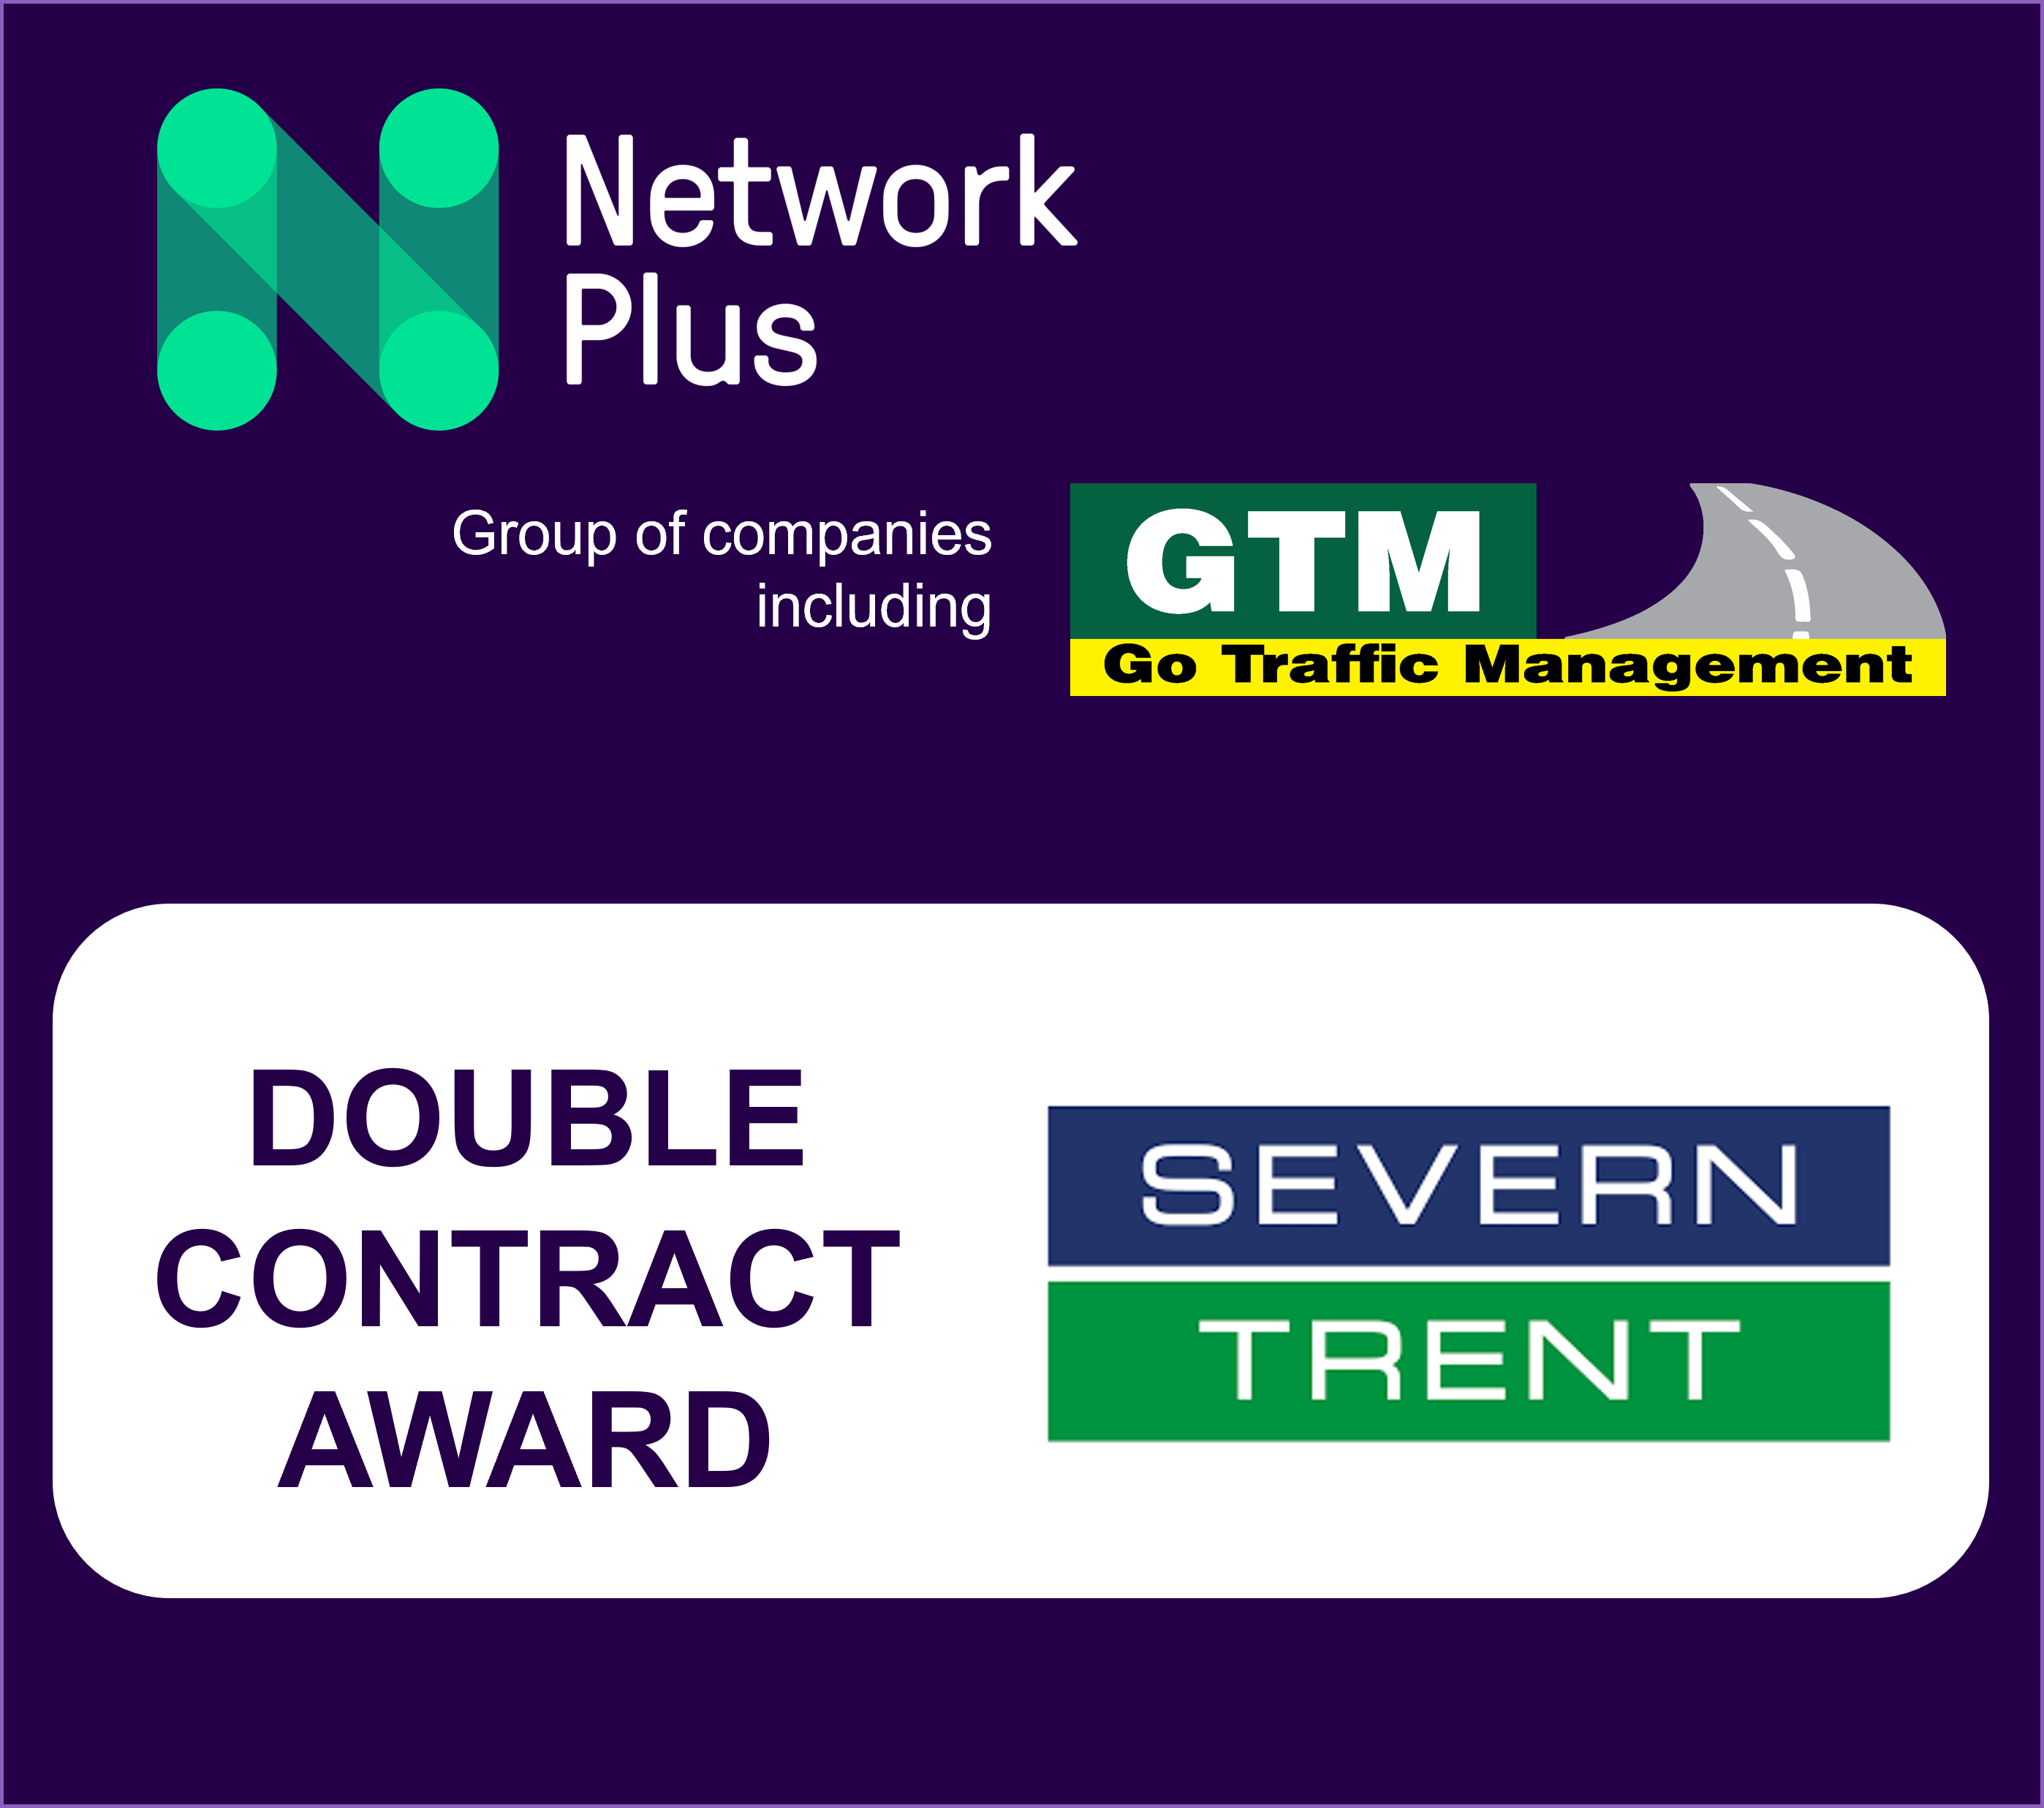 Severn Trent Double contract award